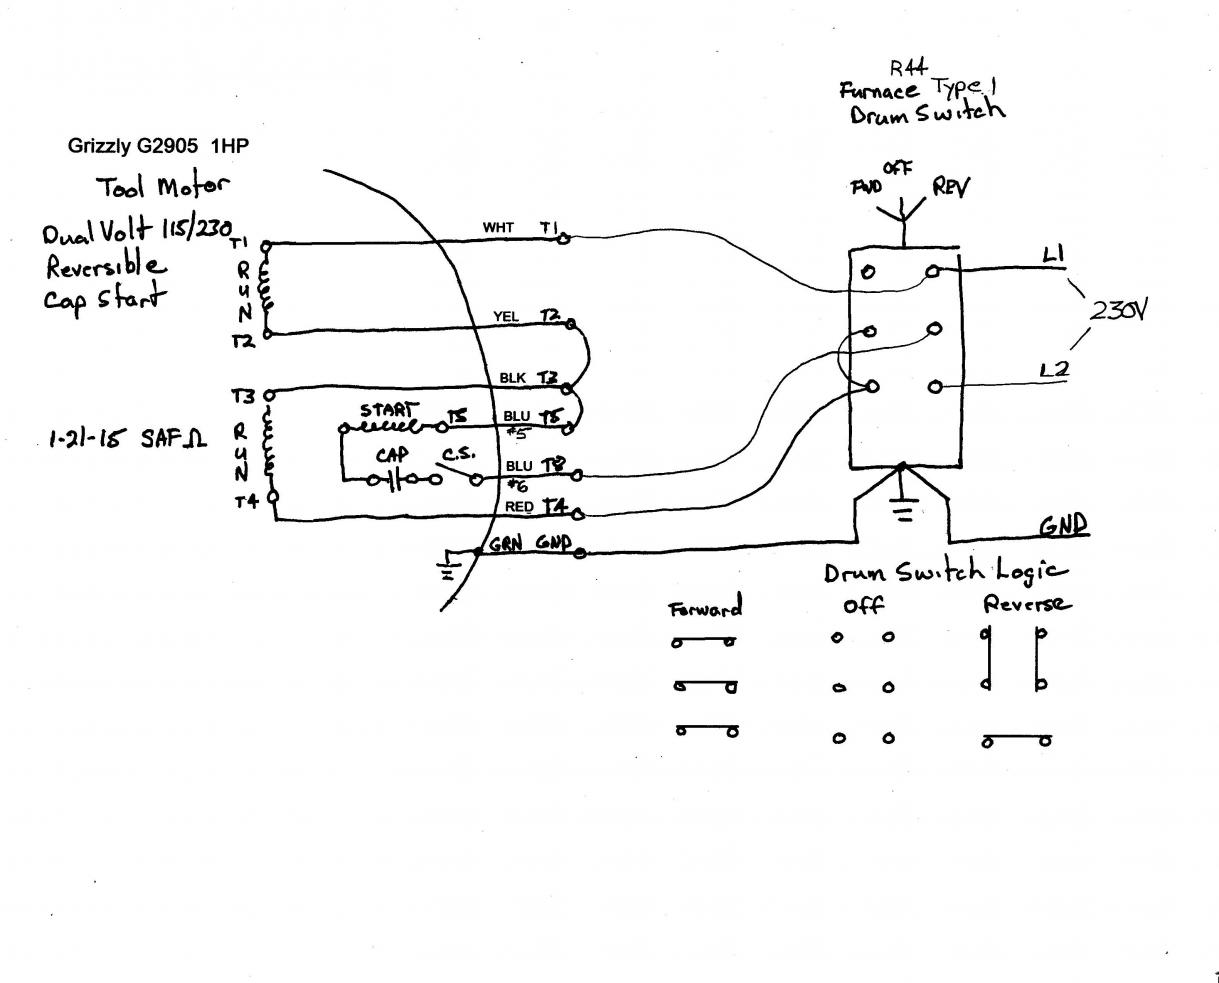 Dayton Motor Diagram 6k974bb - electric motor wiring diagram ... on